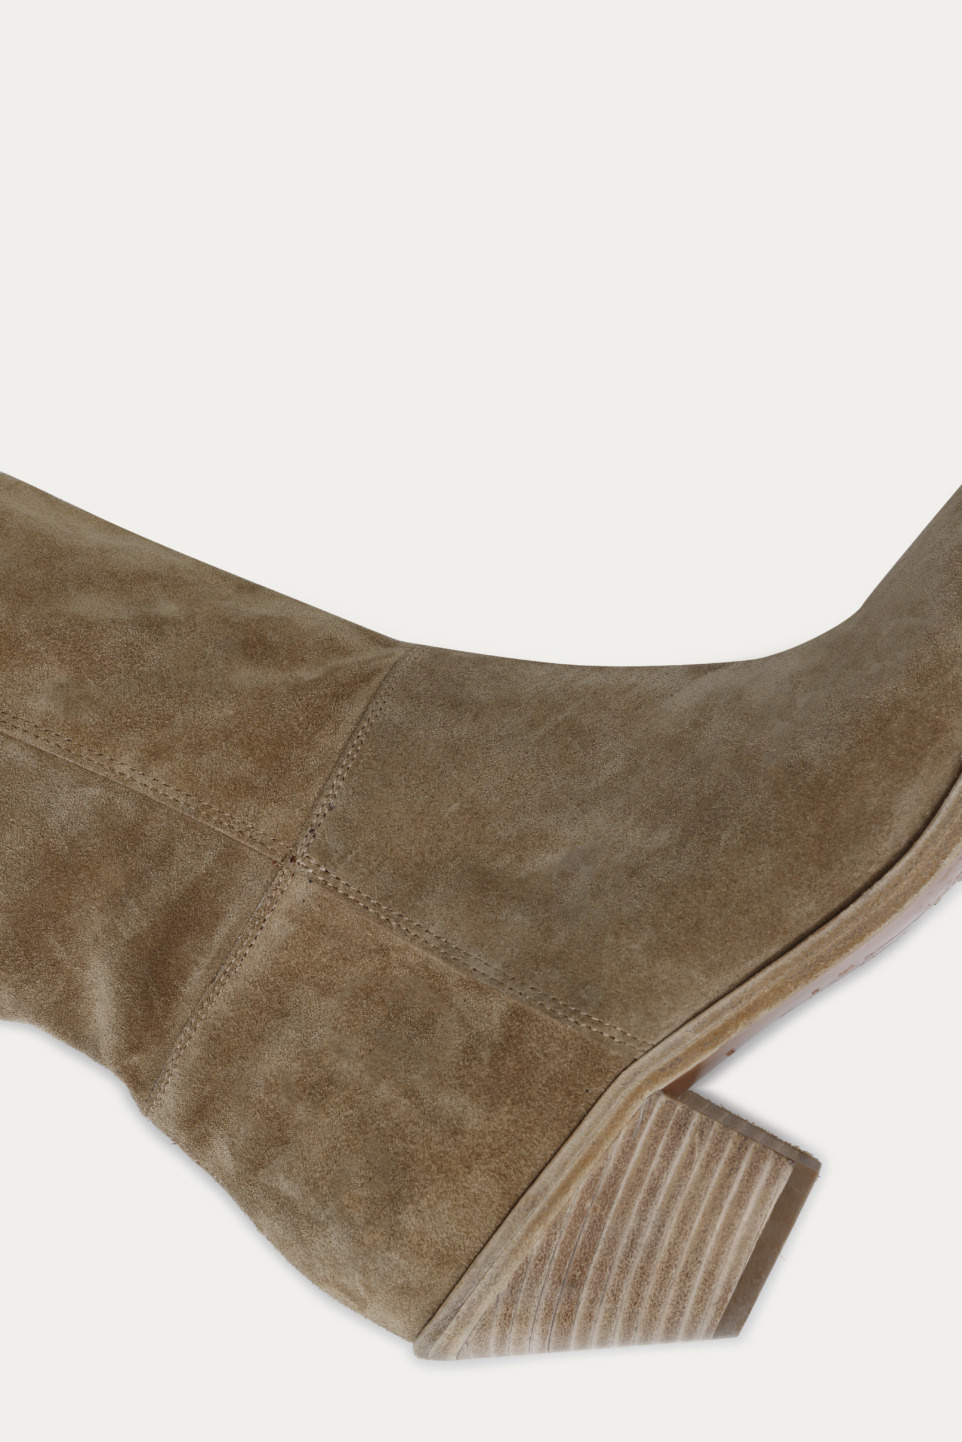 Cowby Boots - Raw Sable 37-3